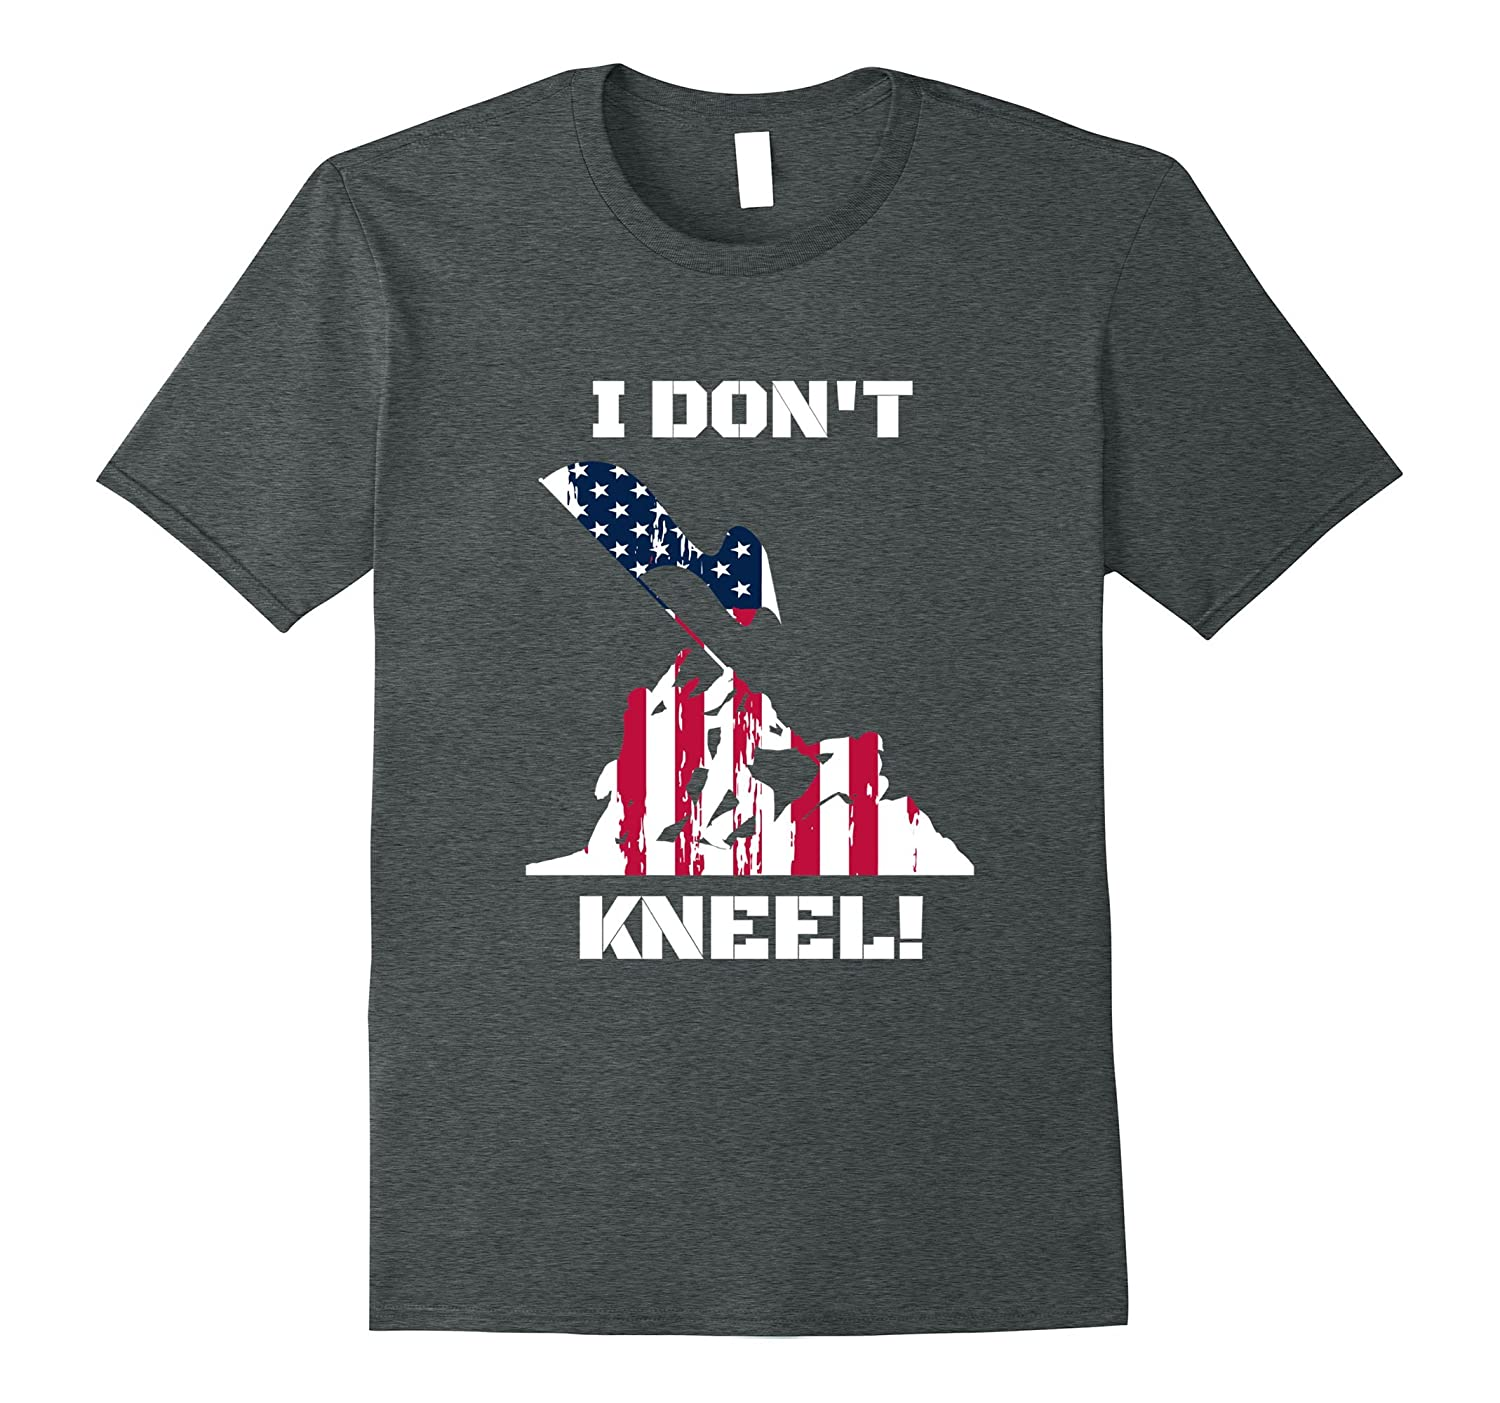 I DON'T KNEEL T-SHIRT-BN